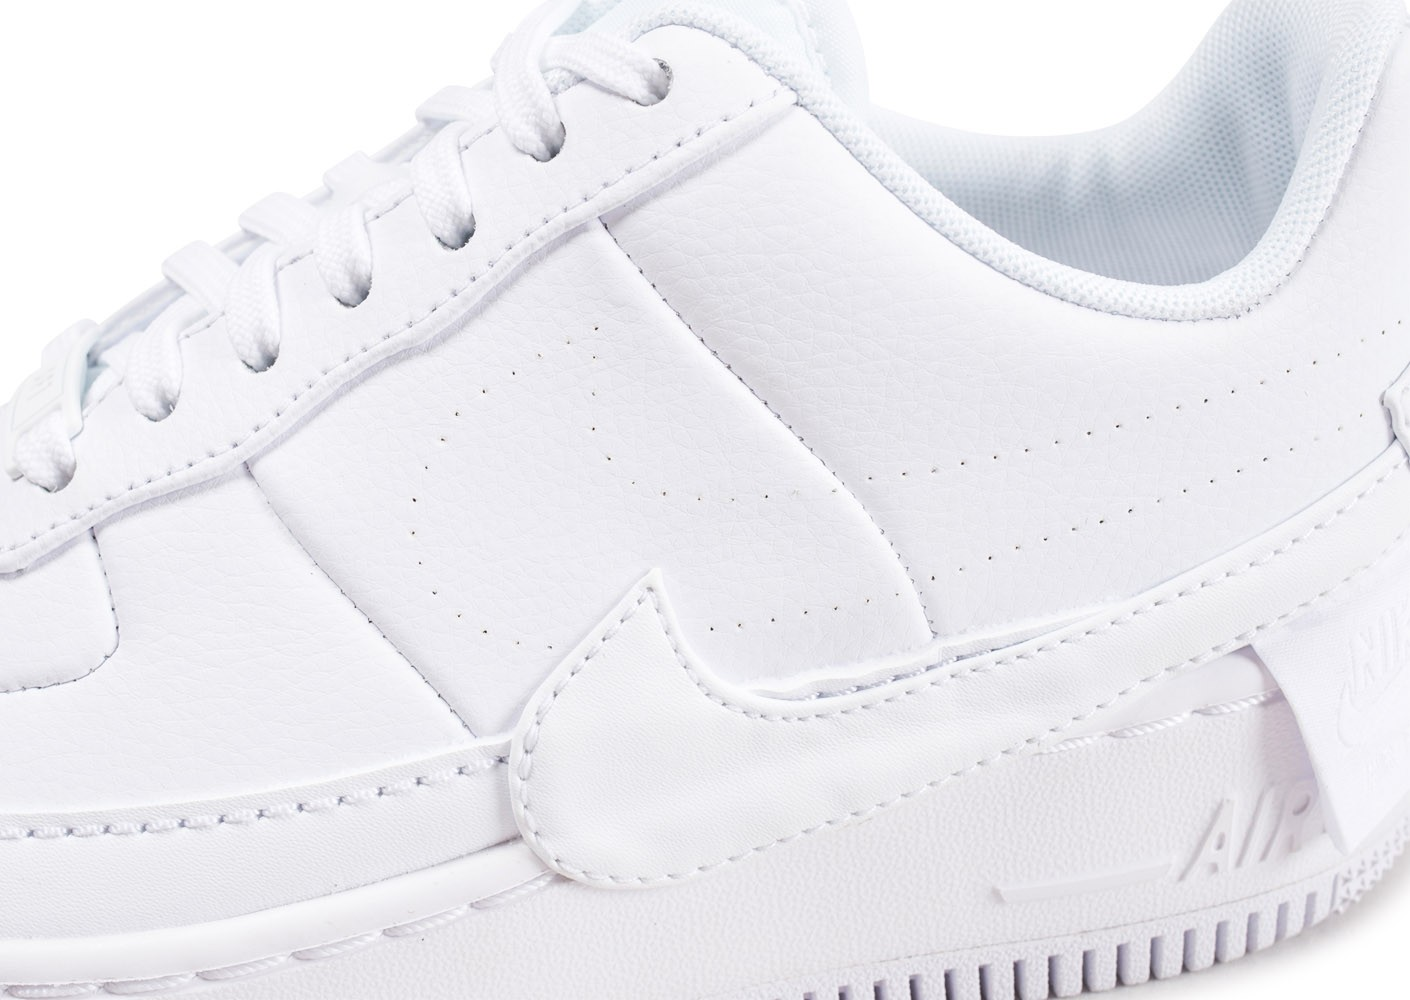 online store 6e42f 28106 ... Chaussures Nike Air Force 1 Jester XX blanche femme vue dessus